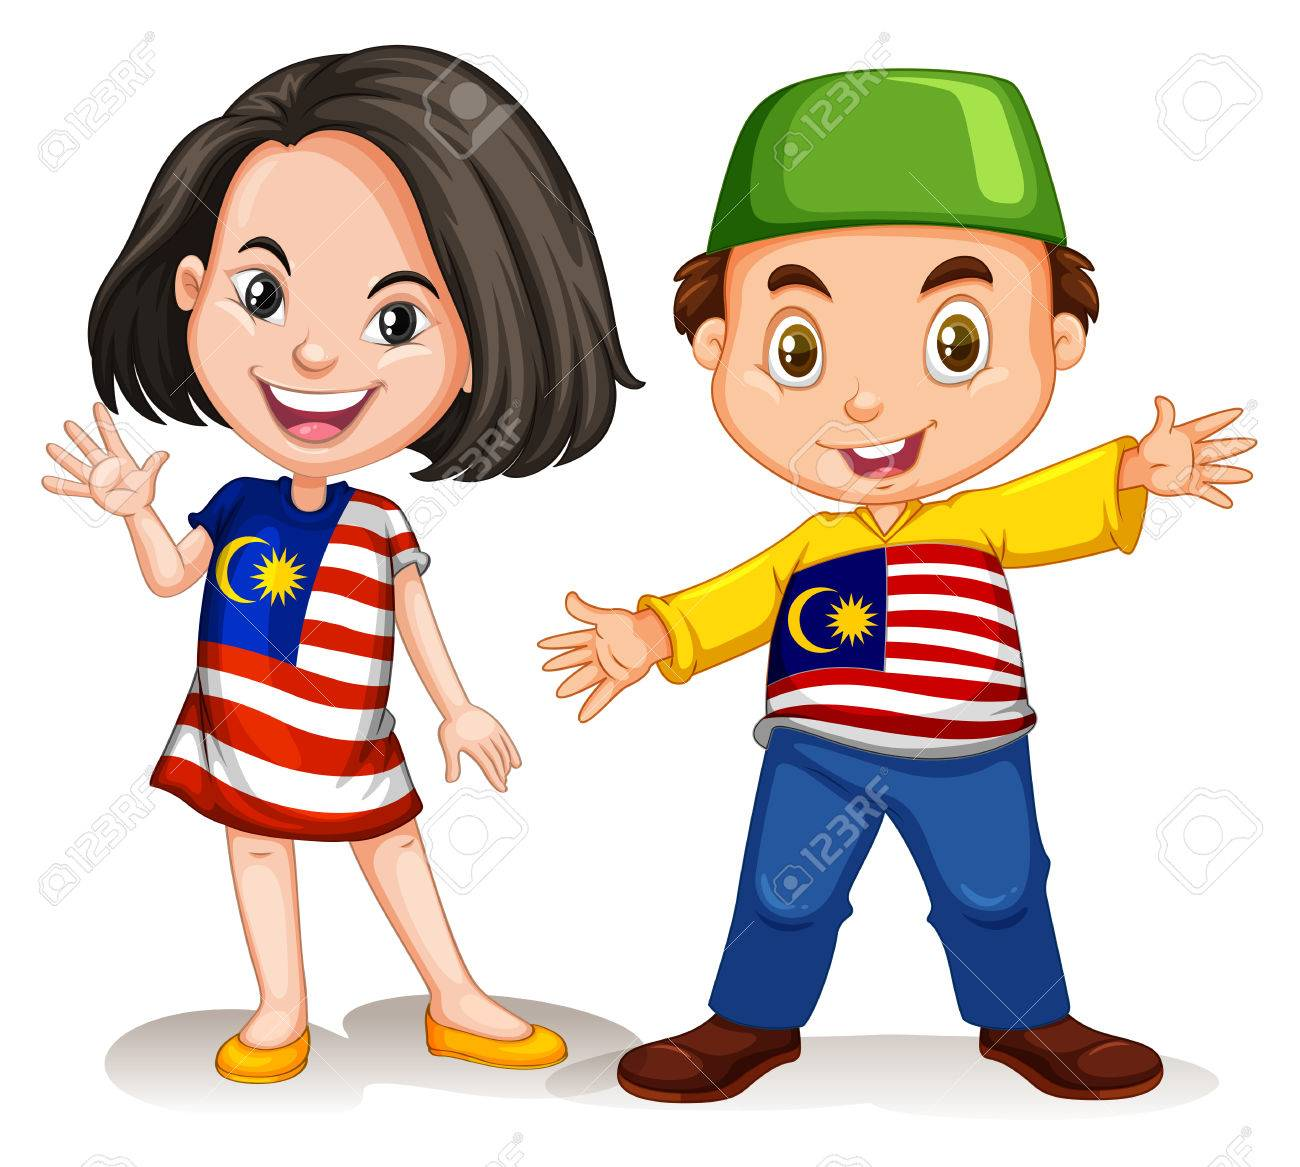 Malaysian girl and boy greeting illustration royalty free cliparts malaysian girl and boy greeting illustration stock vector 44806402 m4hsunfo